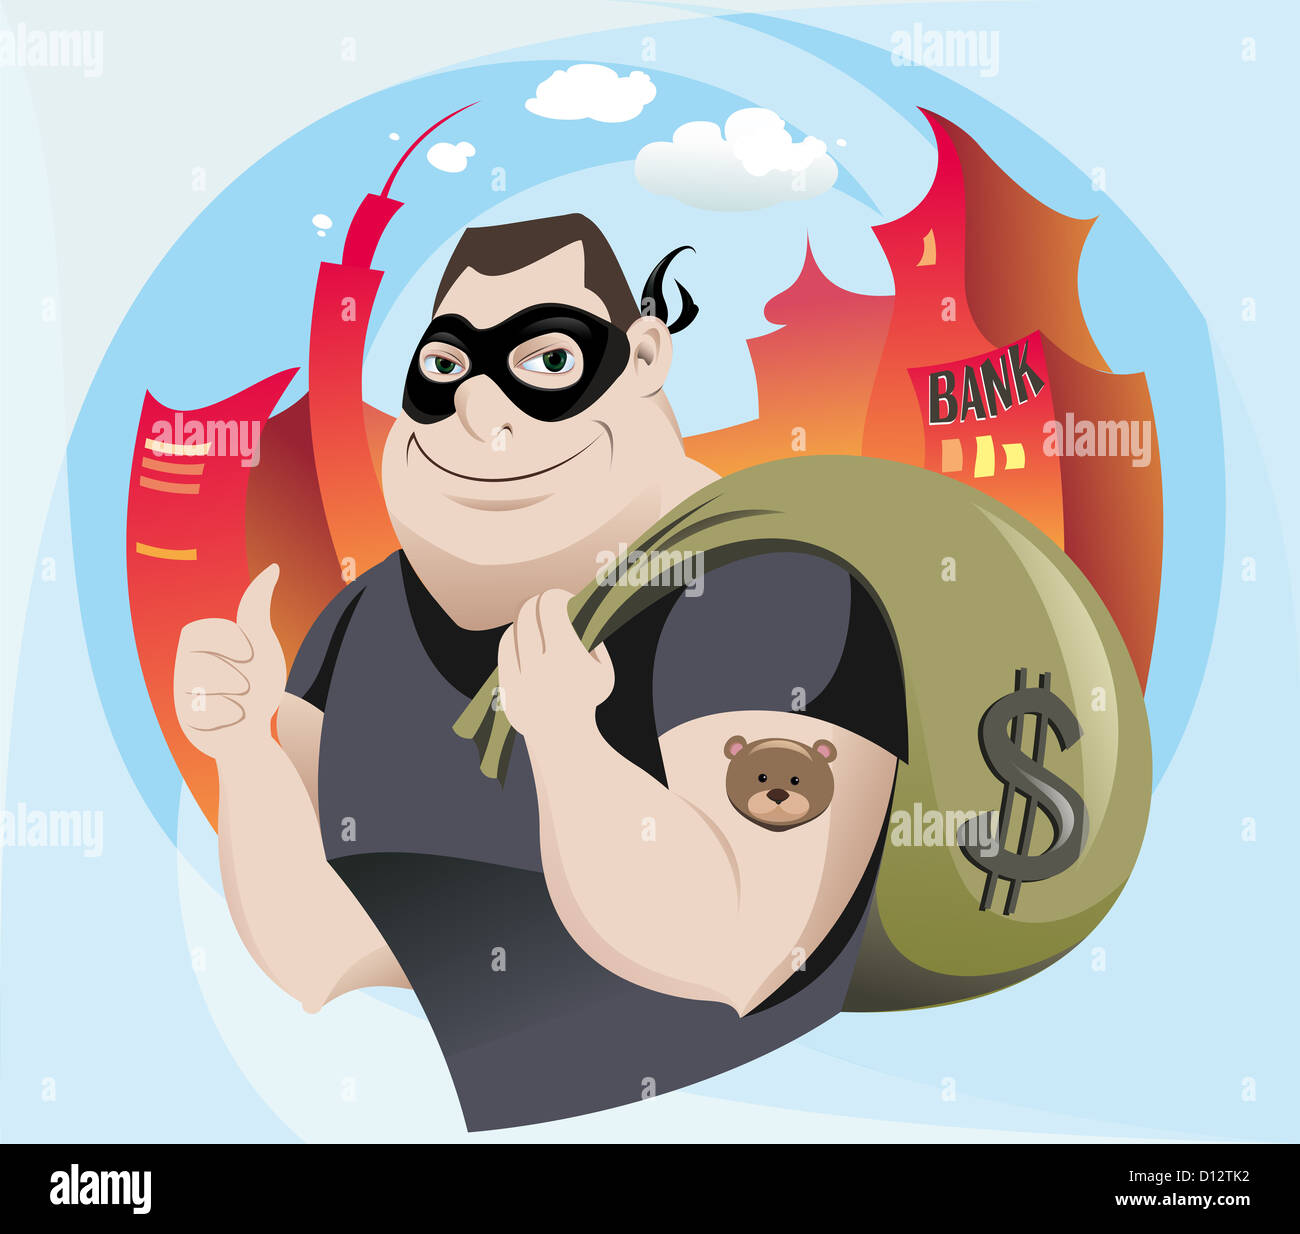 a3afa781240 The vector illustration of the Robber Stock Photo  52309014 - Alamy